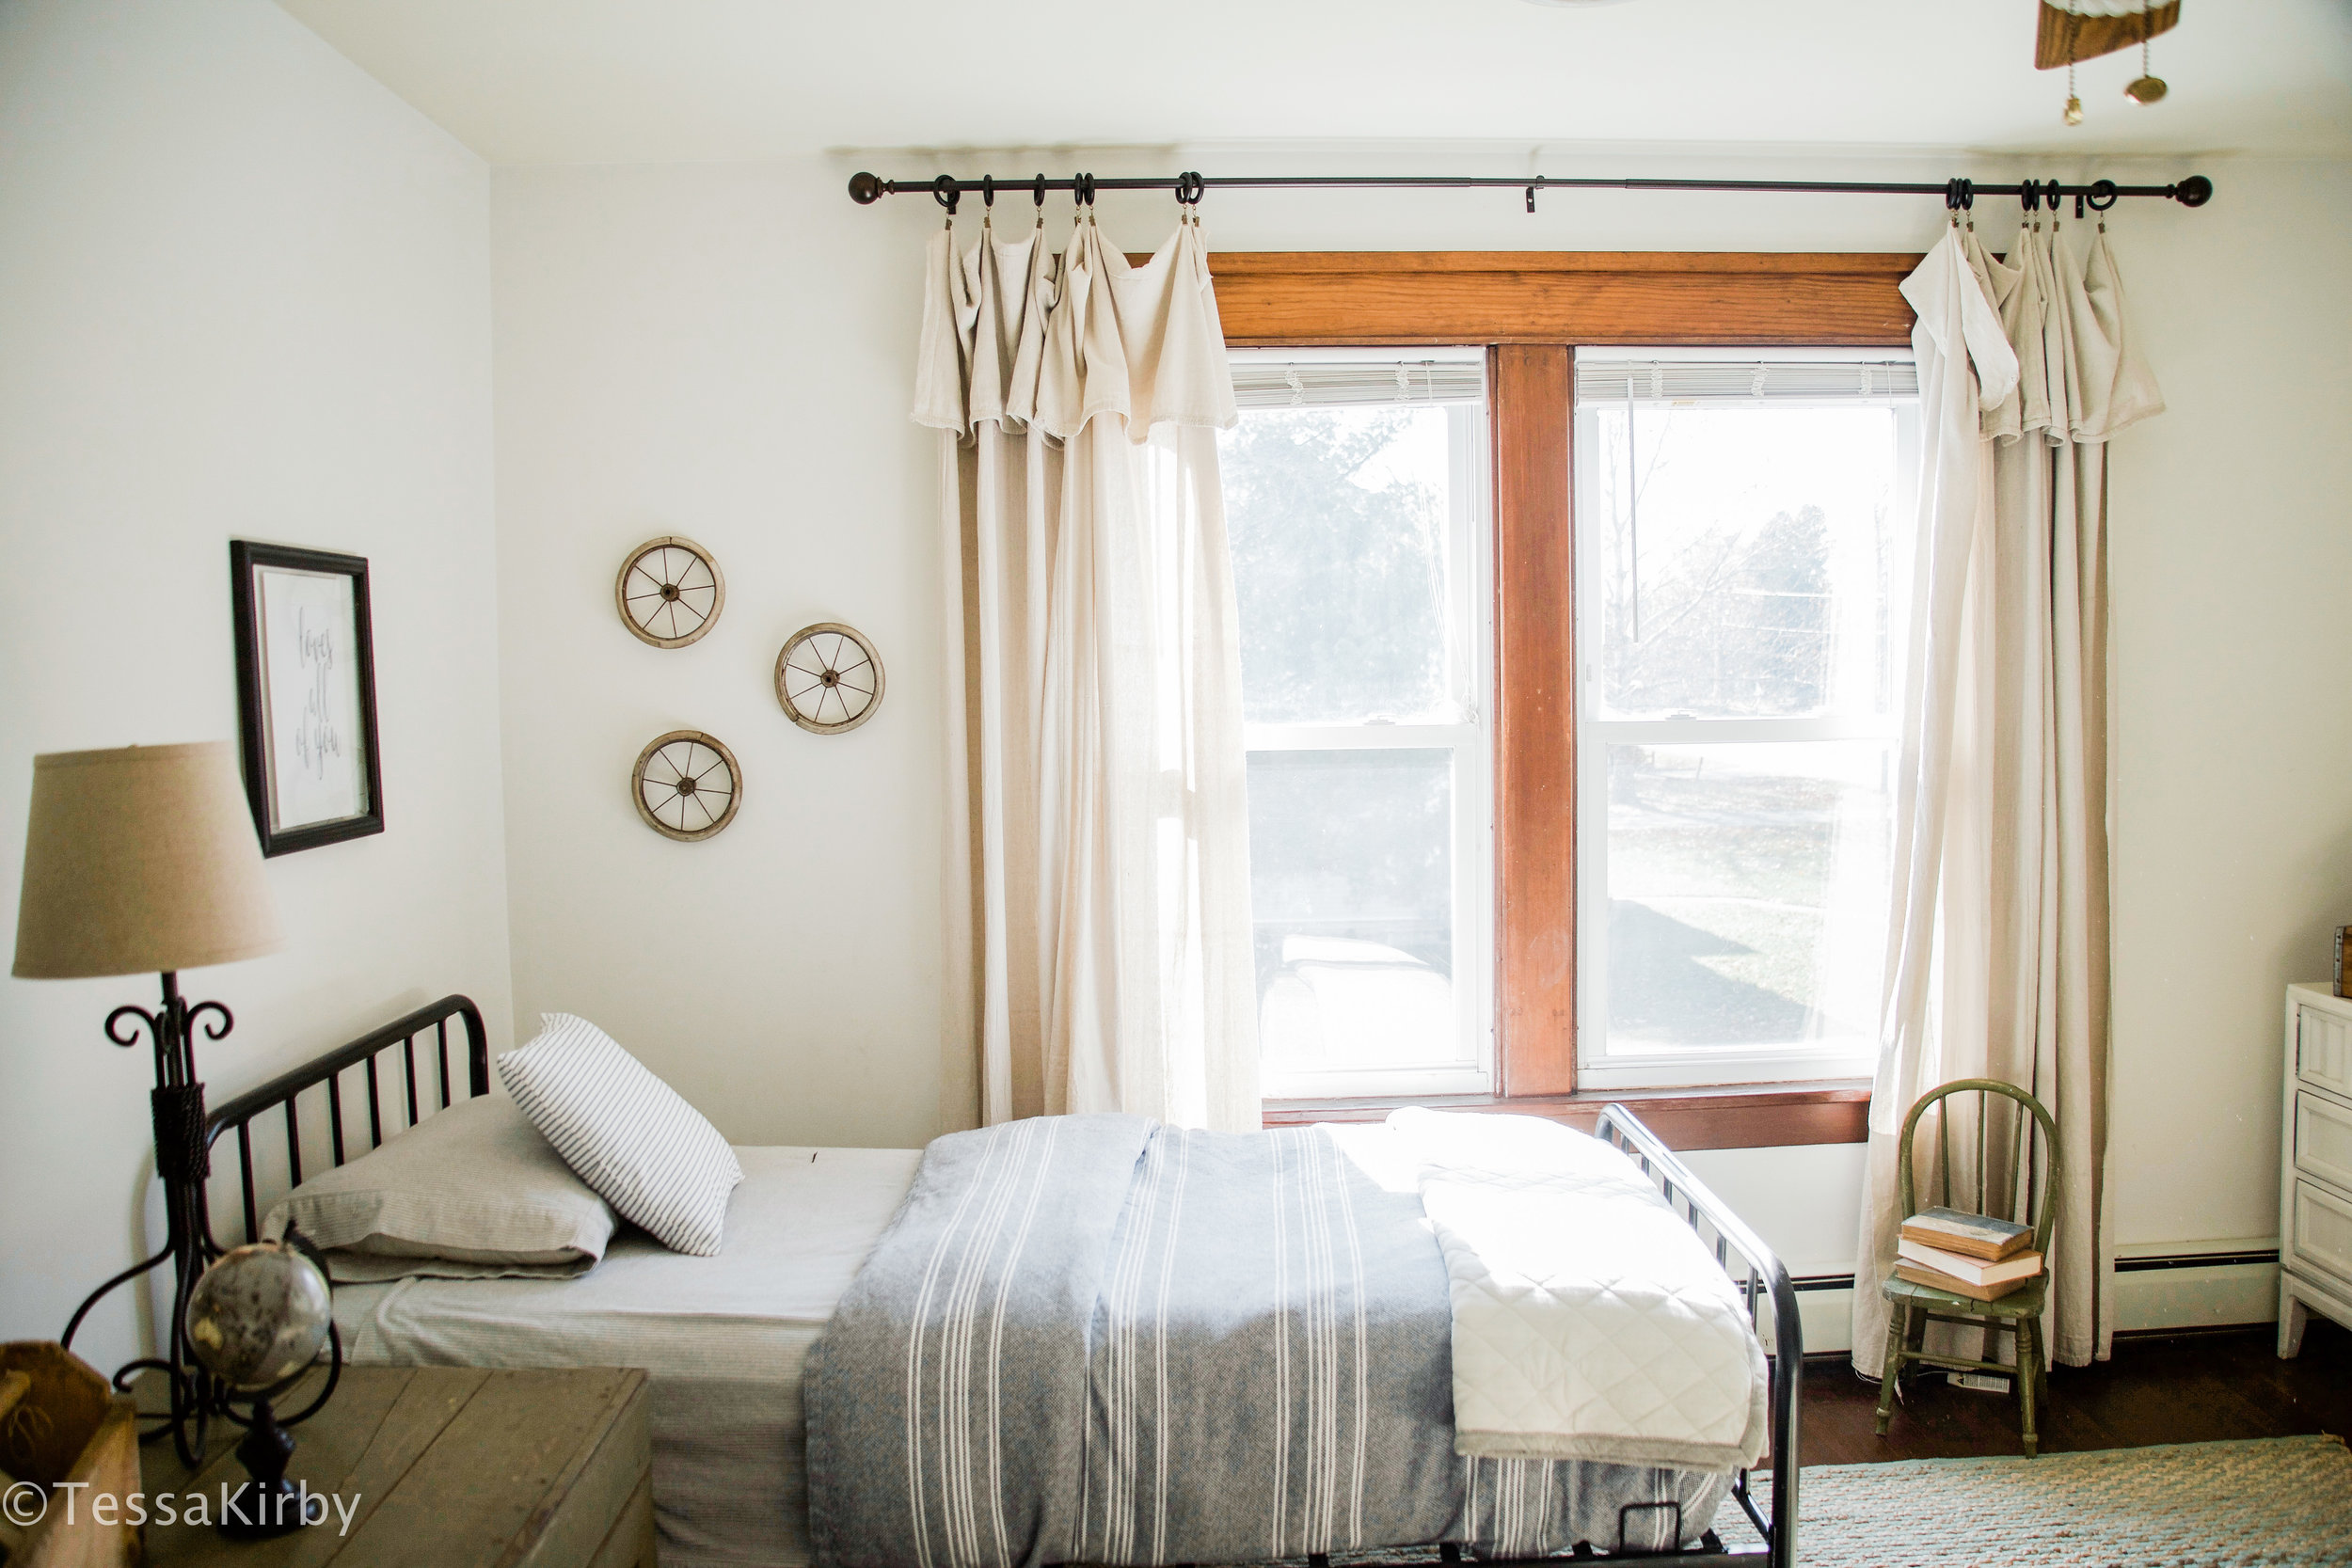 Farmhouse Kids Room Reveal - Click Here To See More...